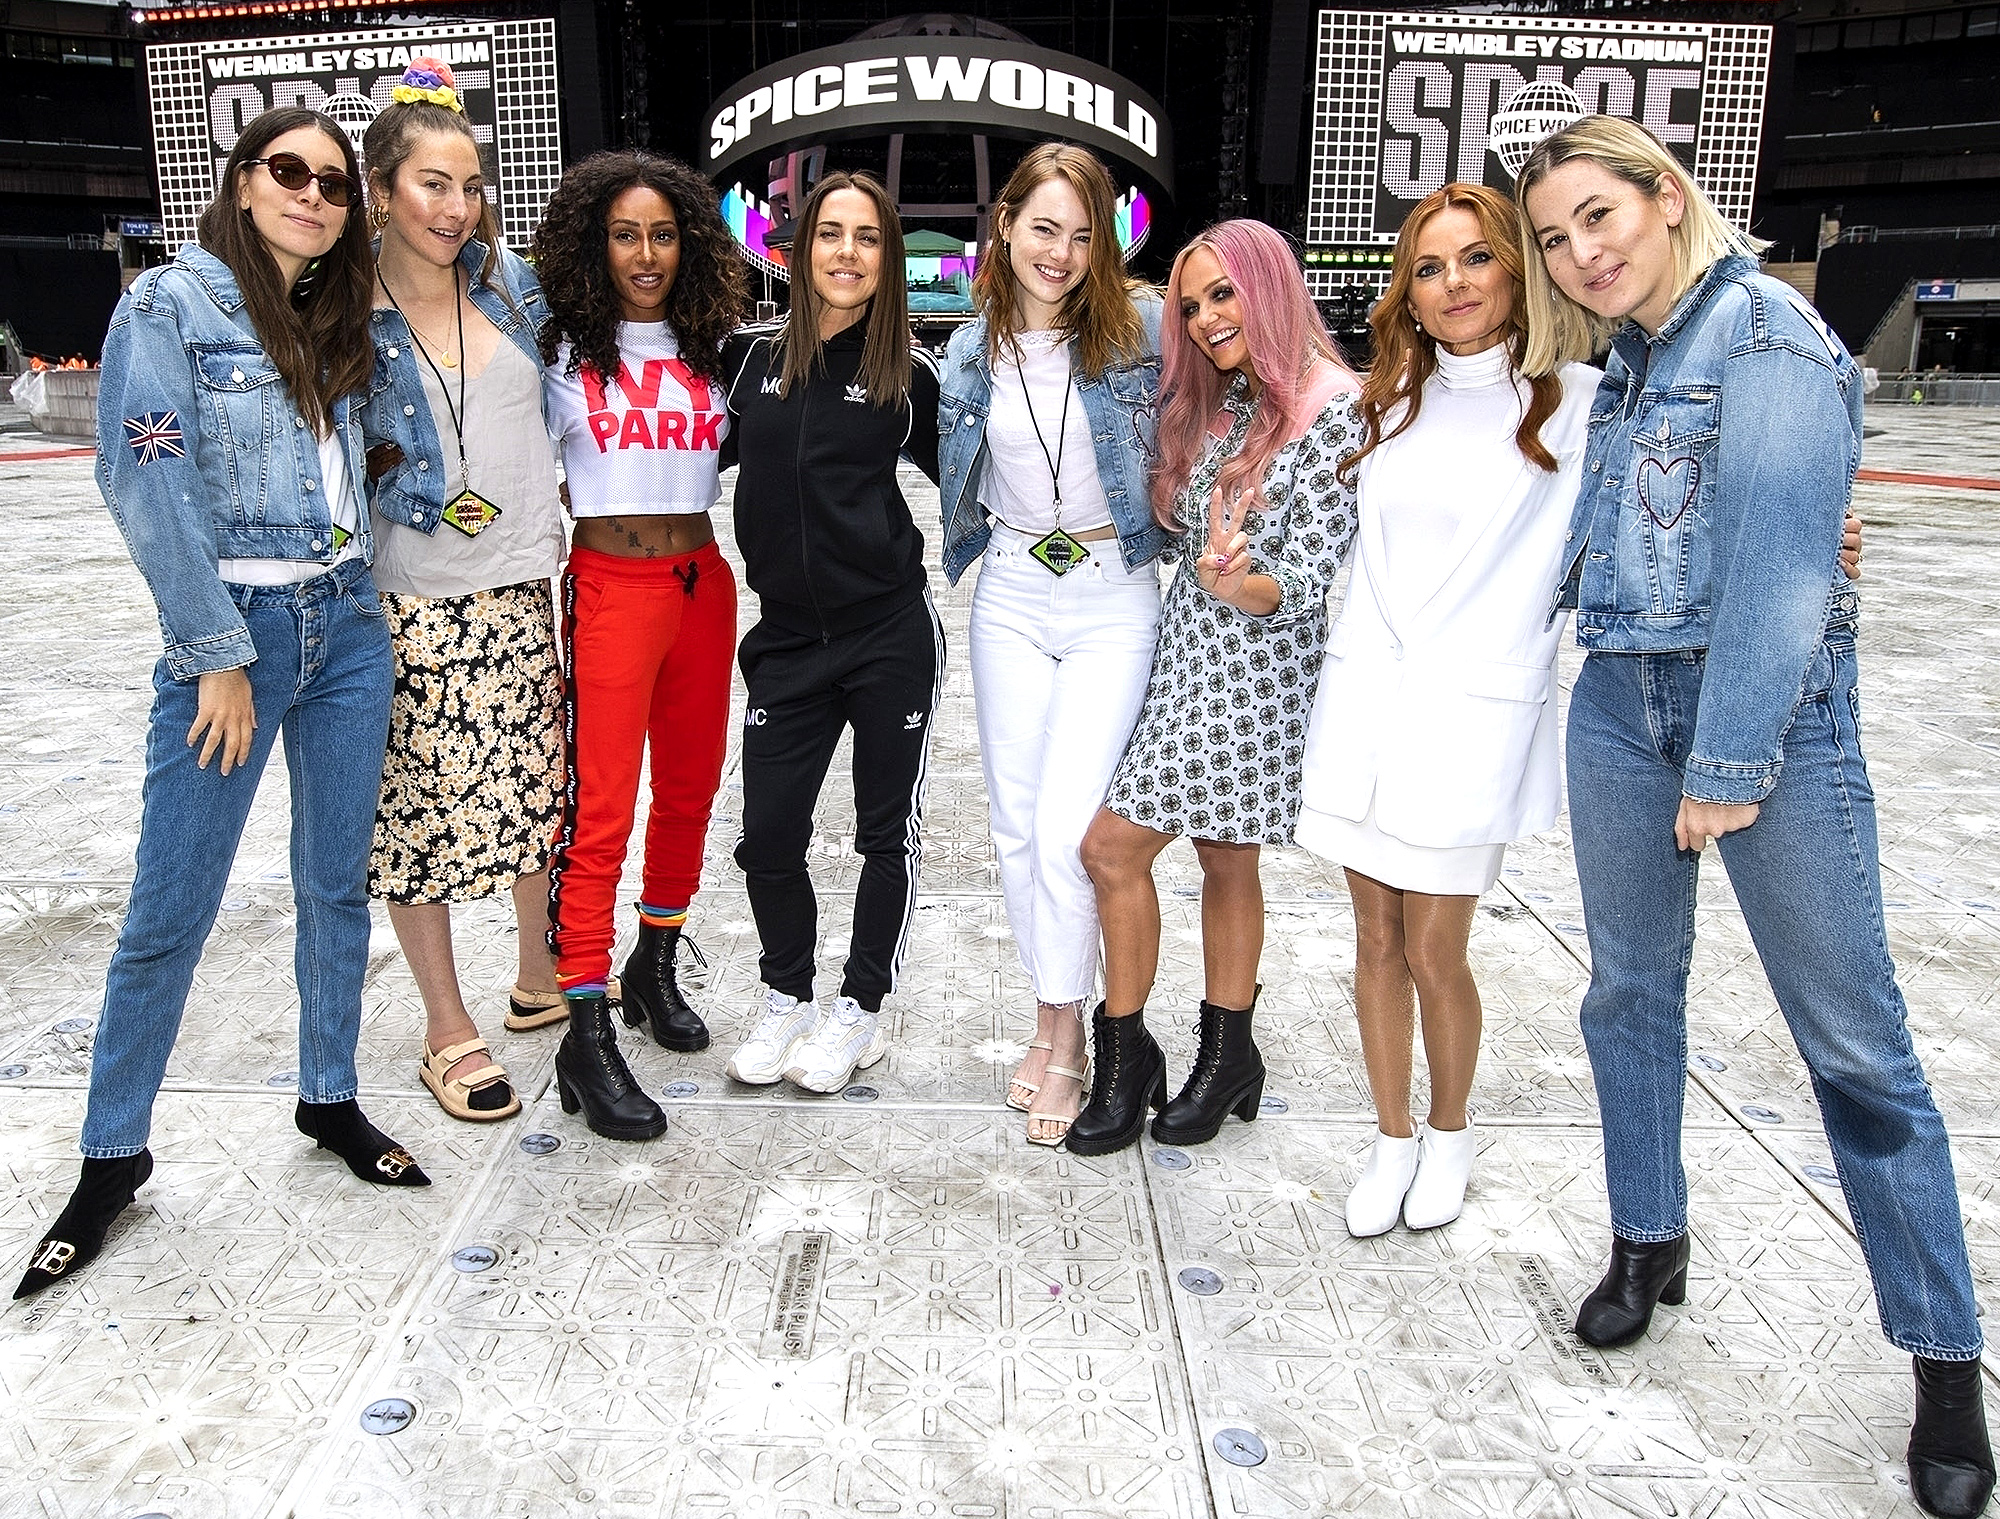 The Spice Girls meet girl band HAIM and Actress Emma Stone